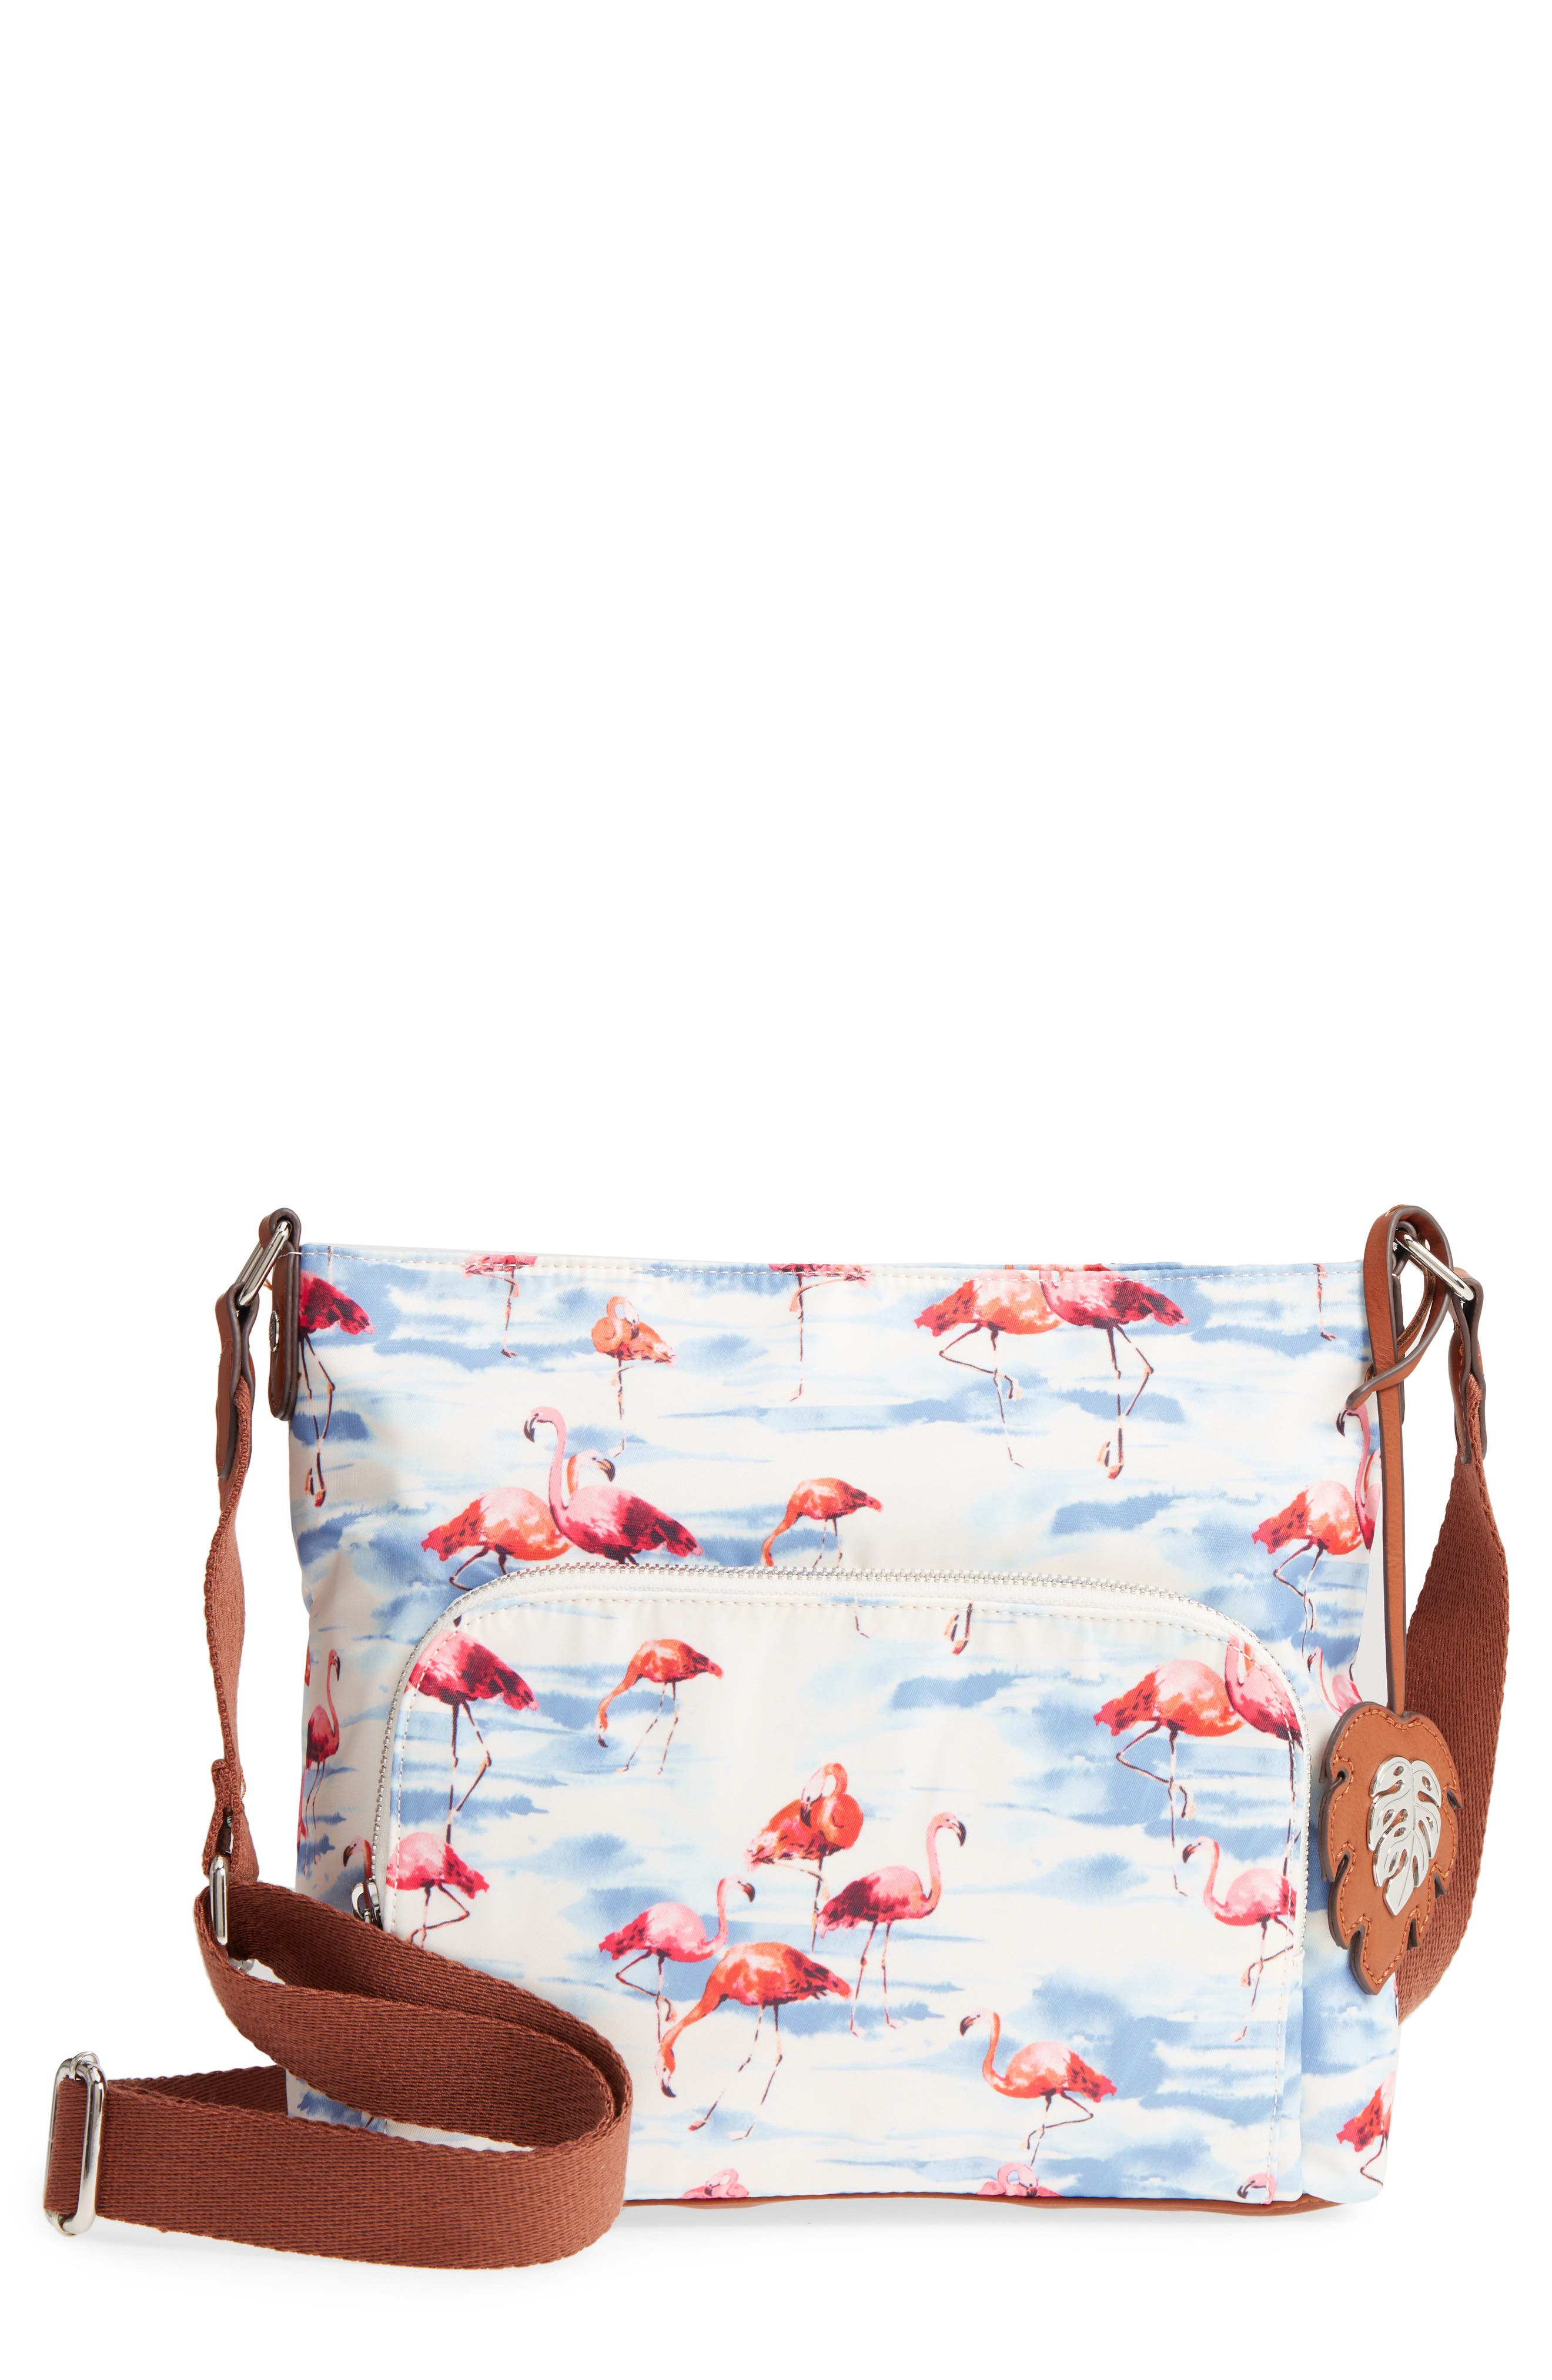 Siesta Key Waterproof Nylon Crossbody Bag,                             Main thumbnail 1, color,                             Flamingo Squad